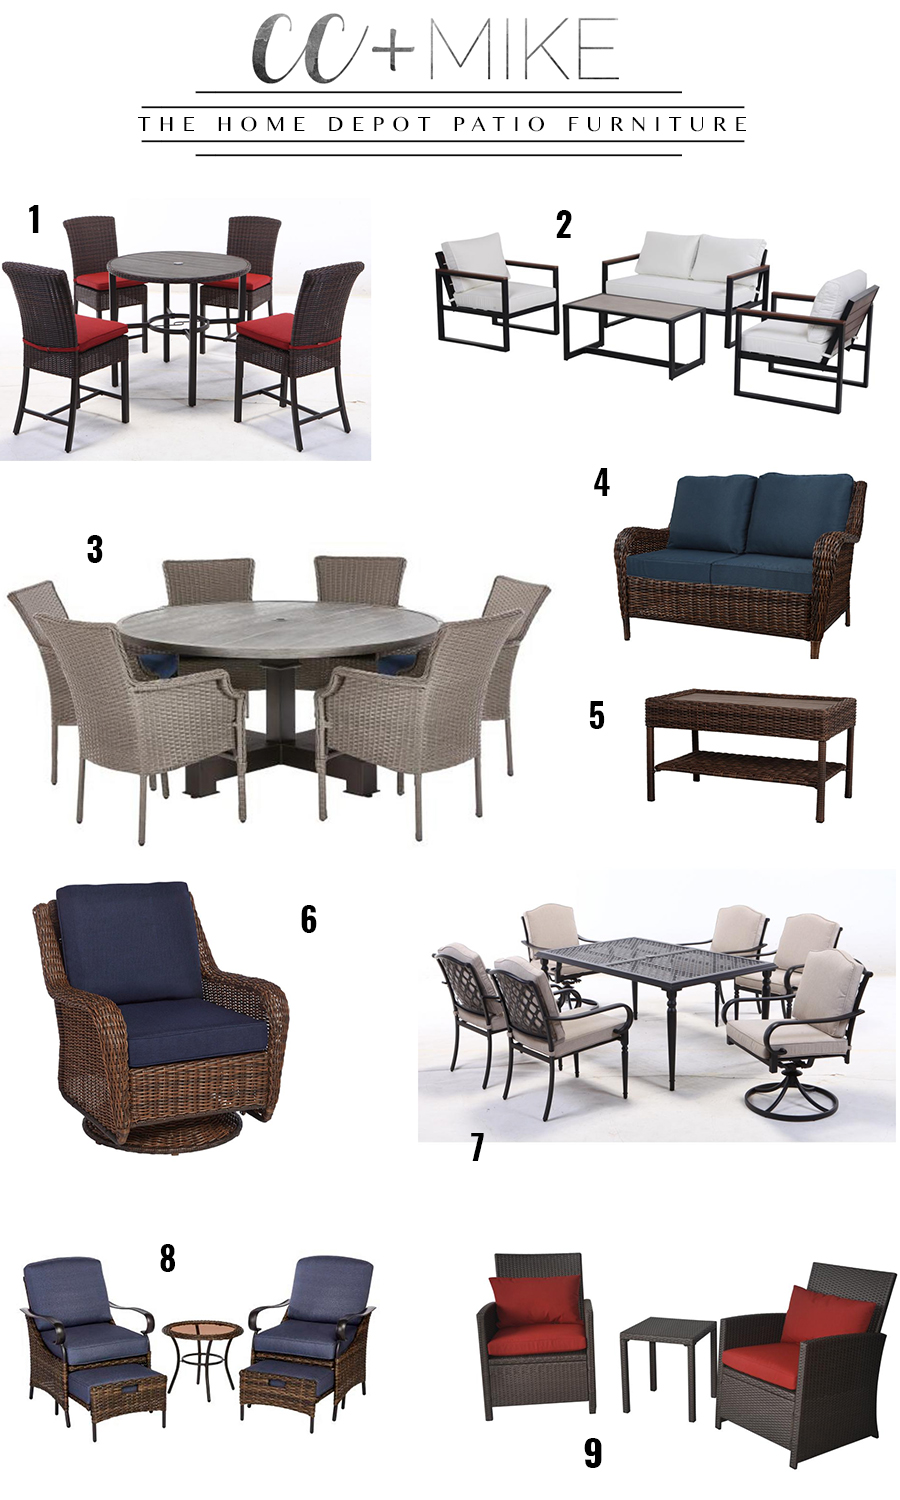 How to Prepare Your Patio for Spring with the Home Depot with a variety of patio furniture in various colors and sizes